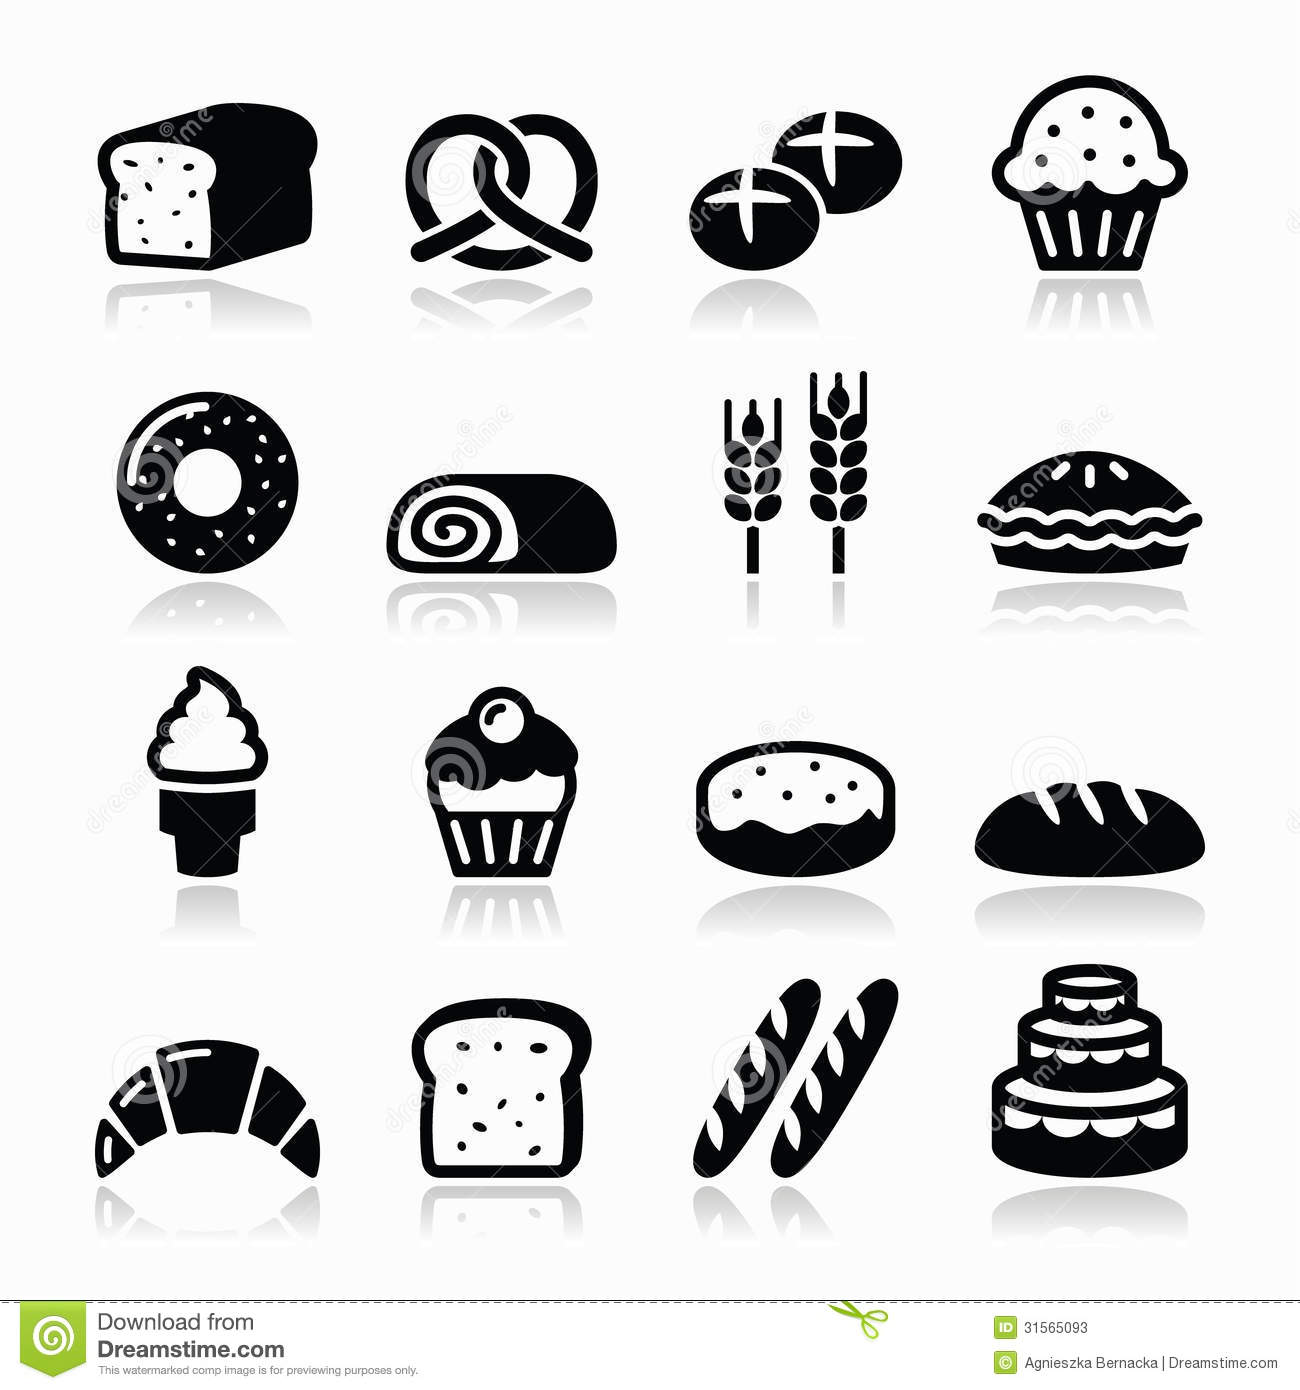 15 Pastry Icon Vector Images